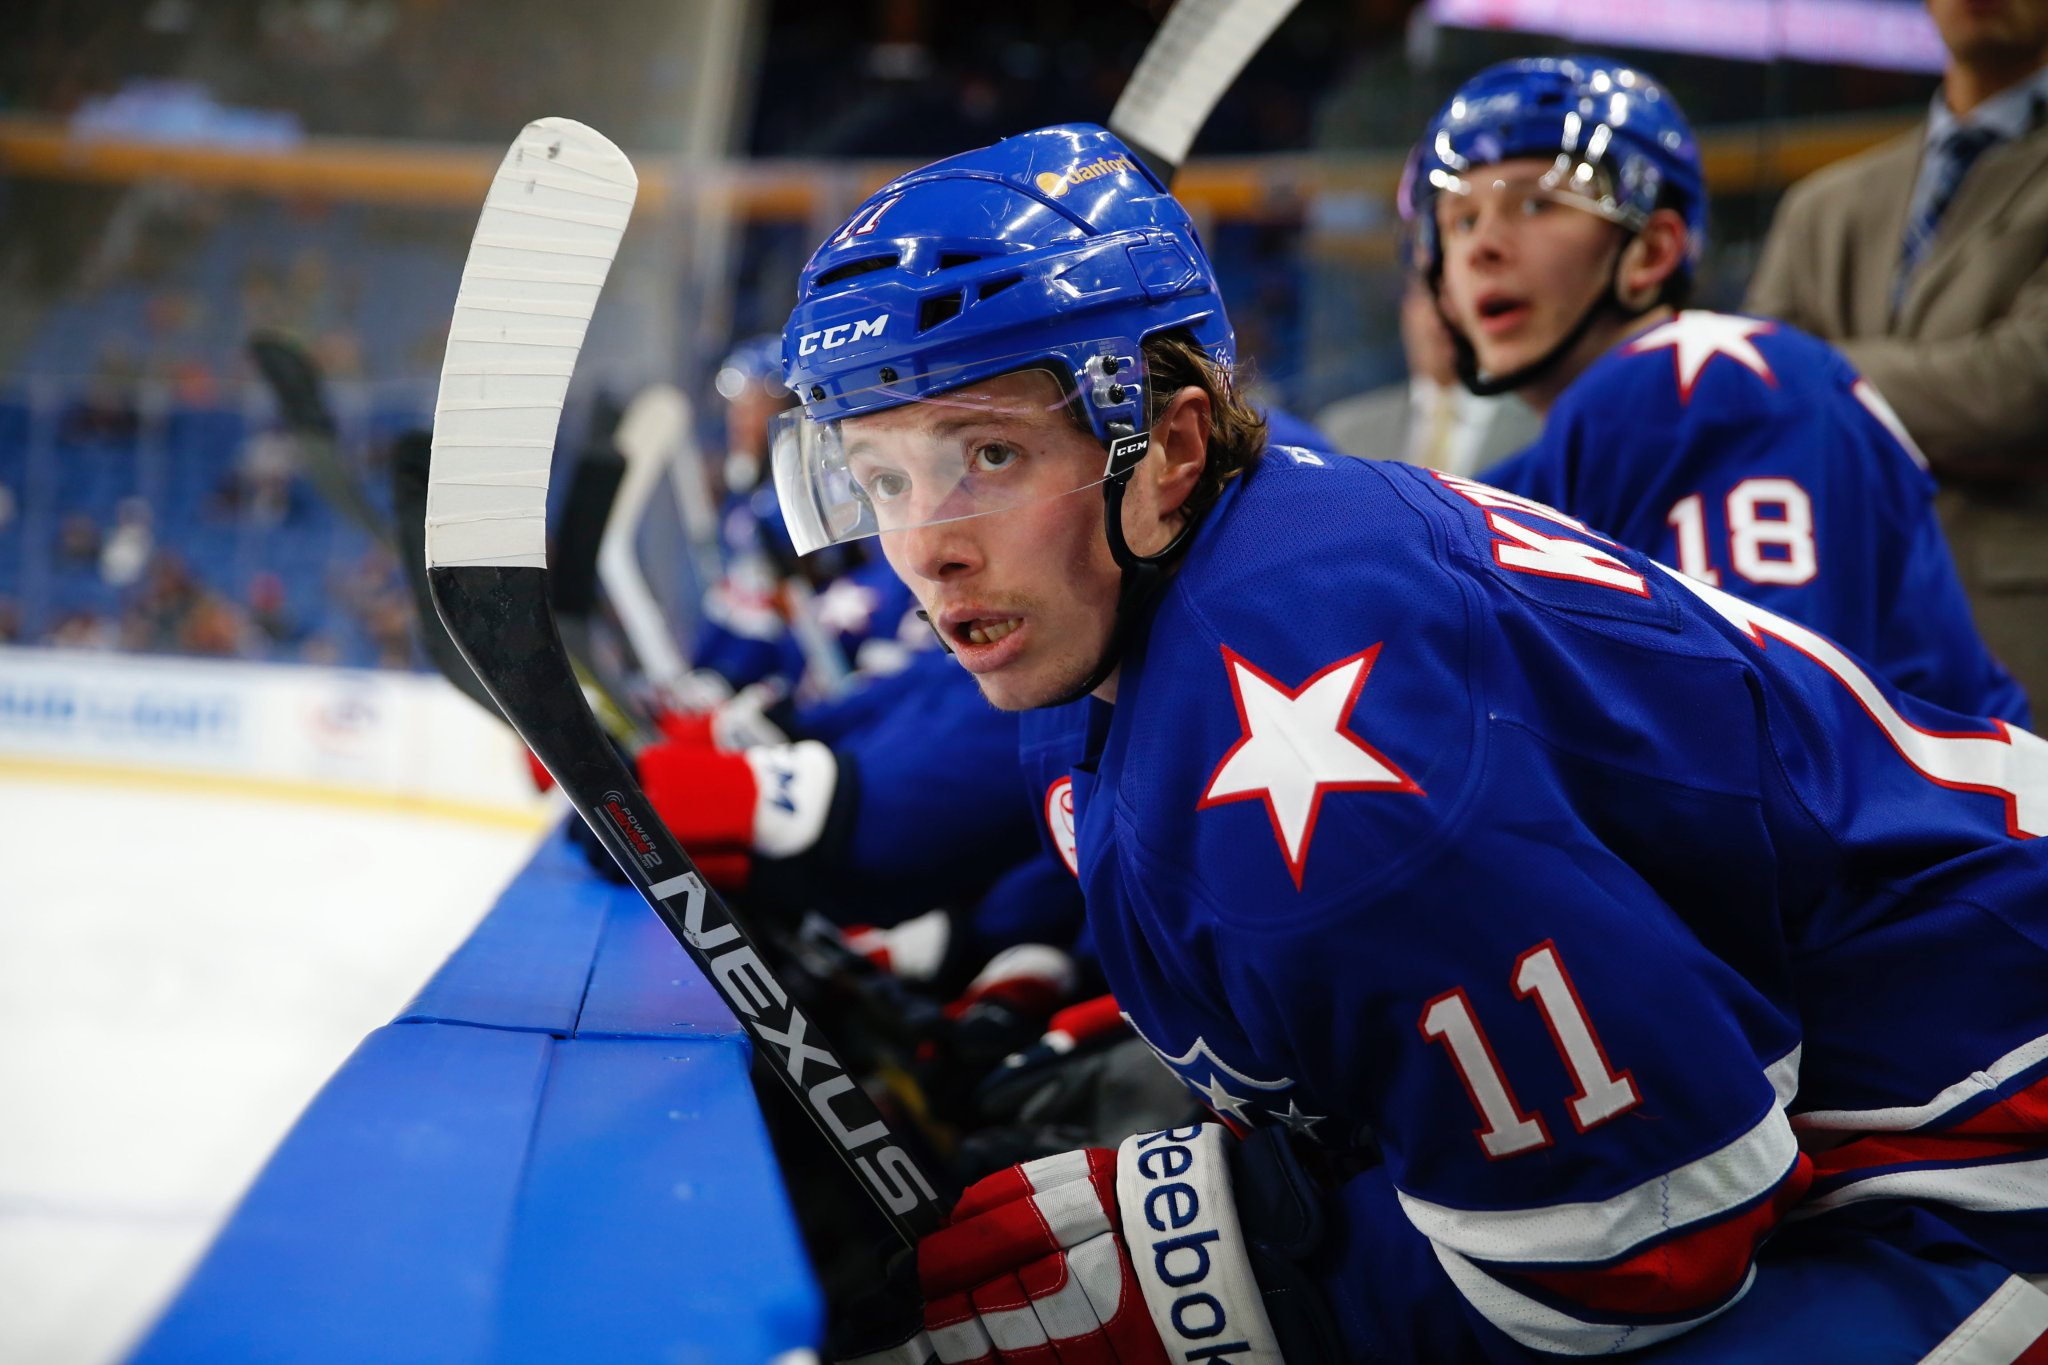 Tim Kennedy has been a veteran presence and point producer for the Amerks. (Harry Scull Jr./Buffalo News)